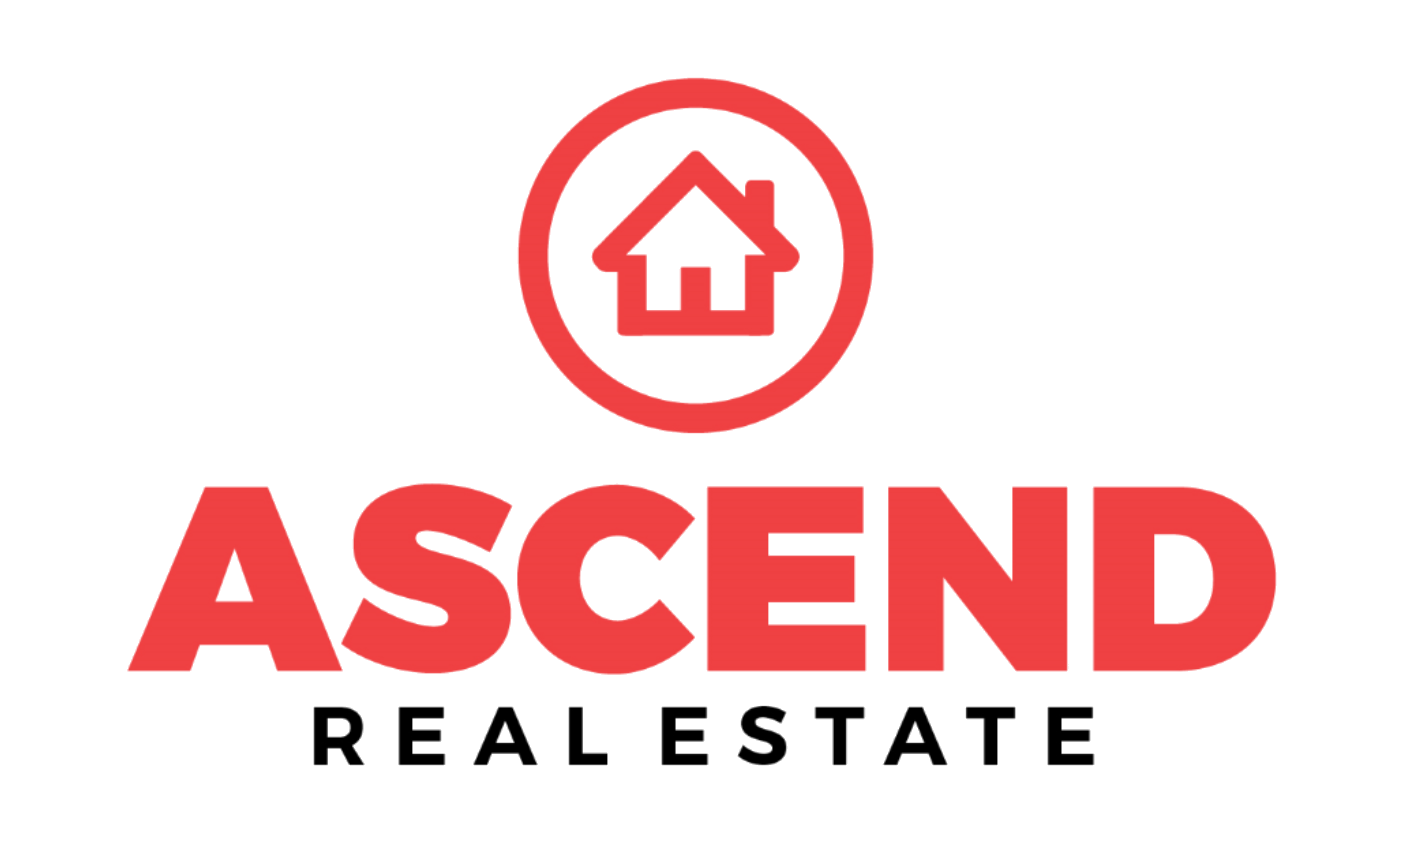 Bakersfield Real Estate, here you will find the latest listings for Real Estate Bakersfield CA